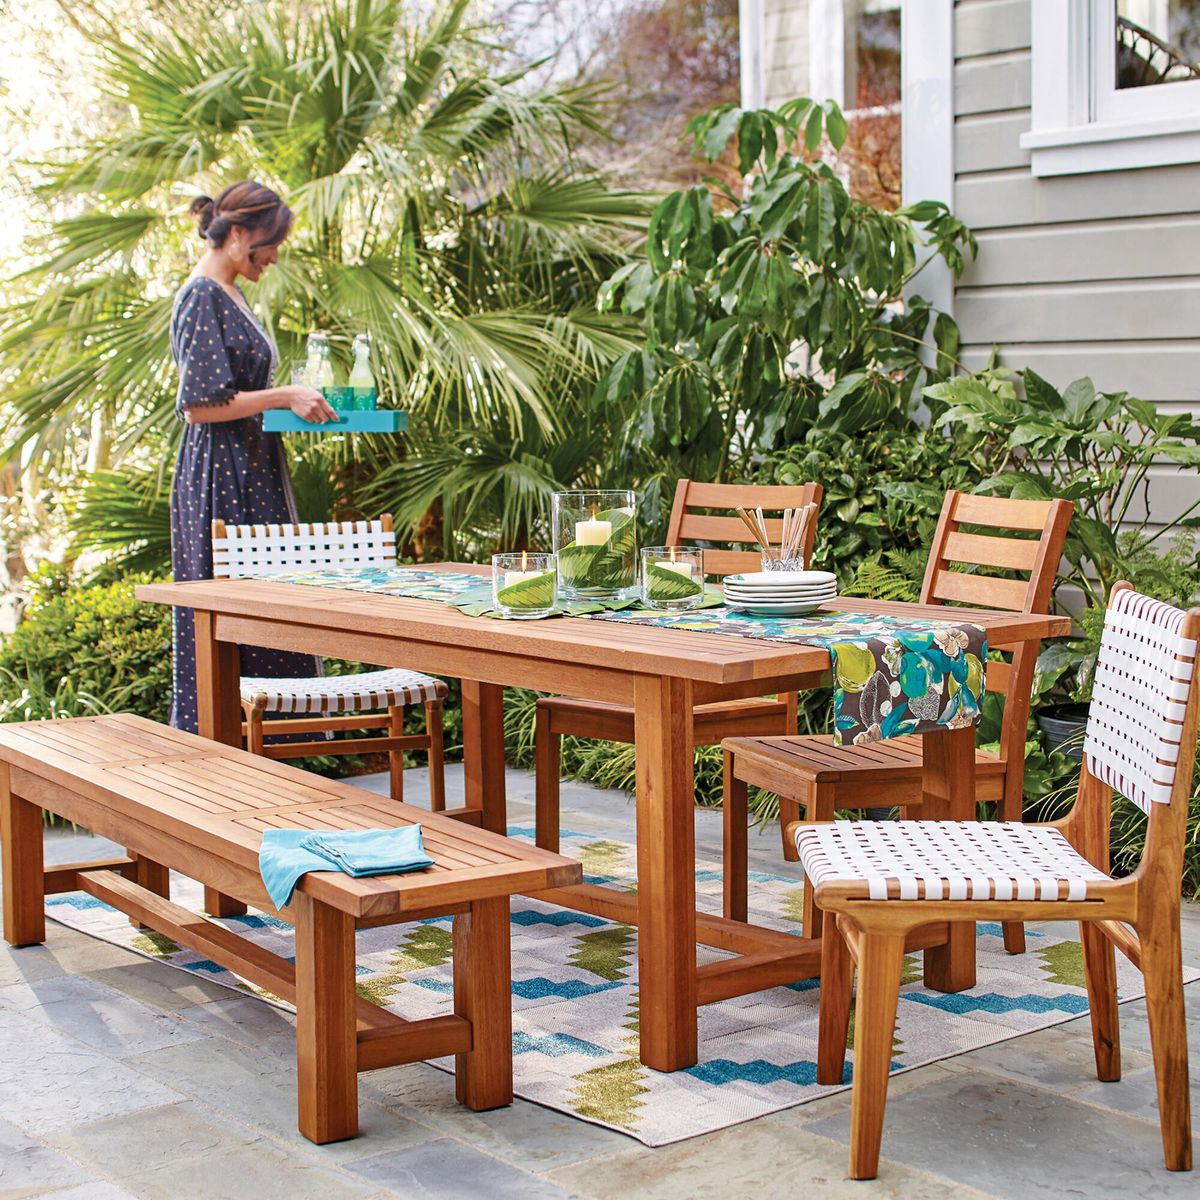 Best outdoor furniture 15 picks for any bud Curbed